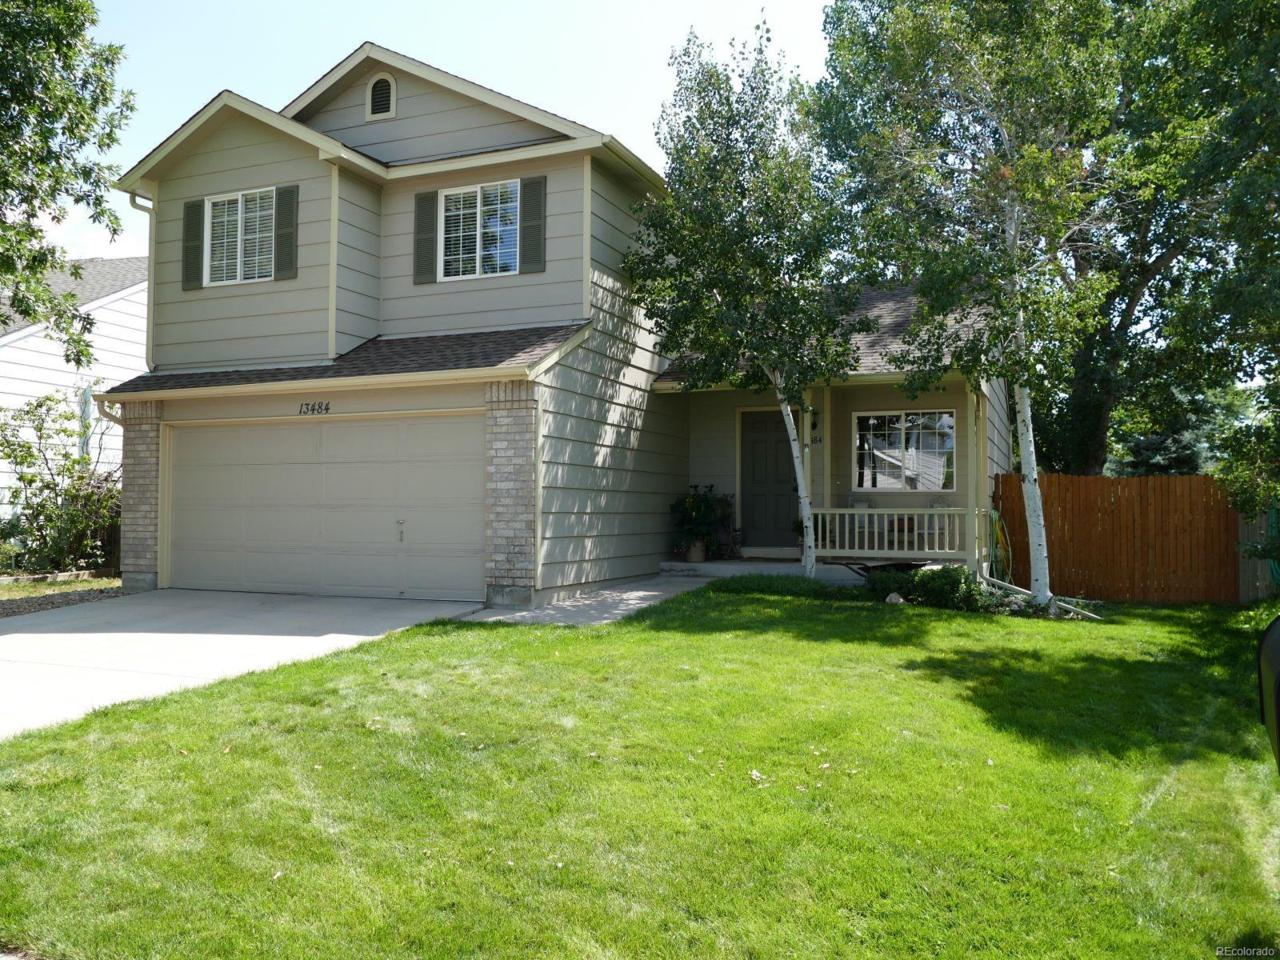 13484 Pecos Street, Westminster, CO 80234 (MLS #9936984) :: 8z Real Estate